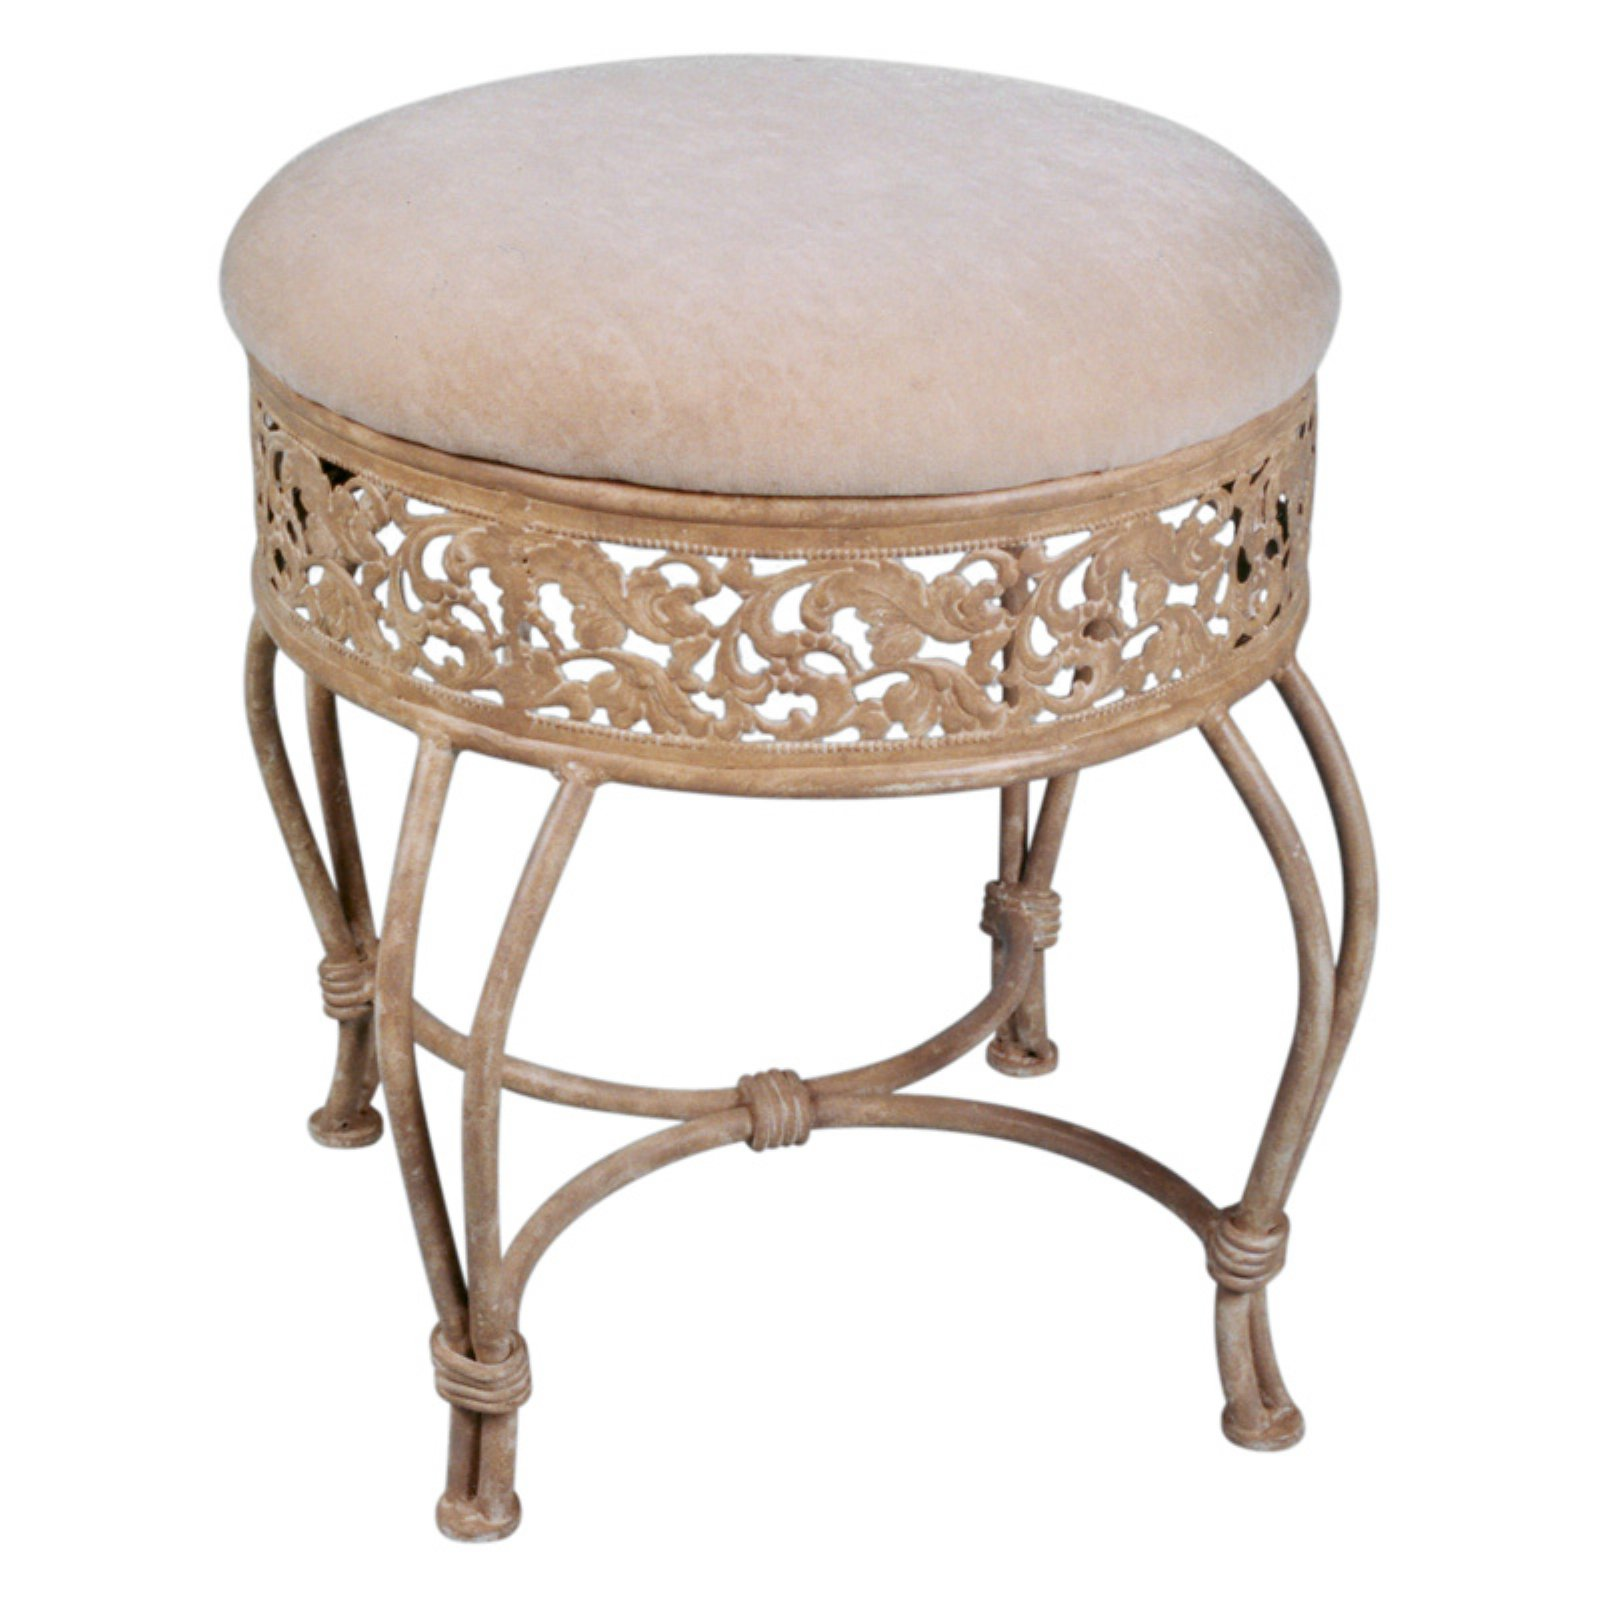 Walmart.com deals on Hillsdale Furniture Villa III Vanity Stool, Antique Beige